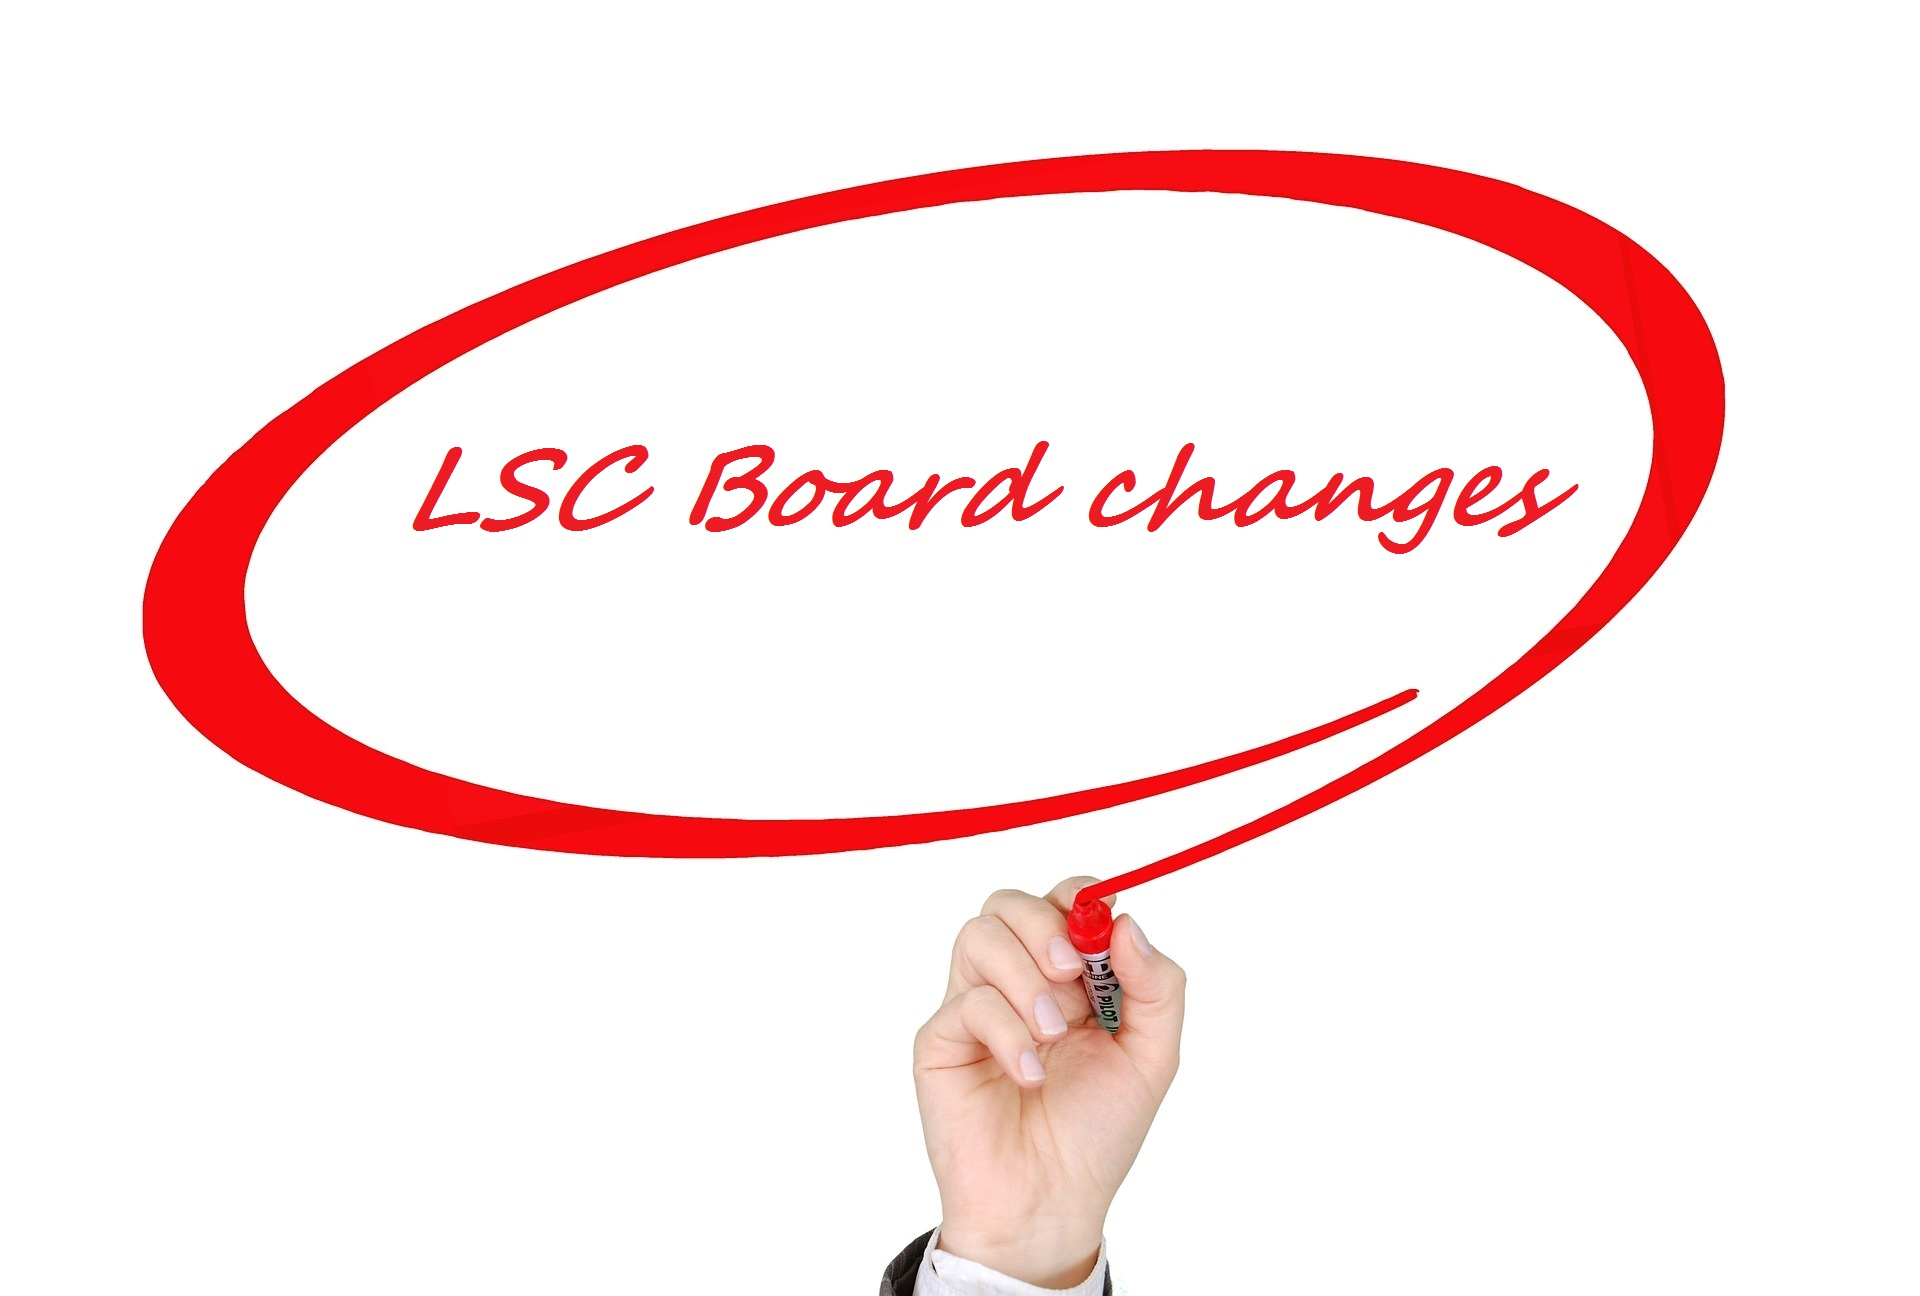 LSC Board changes